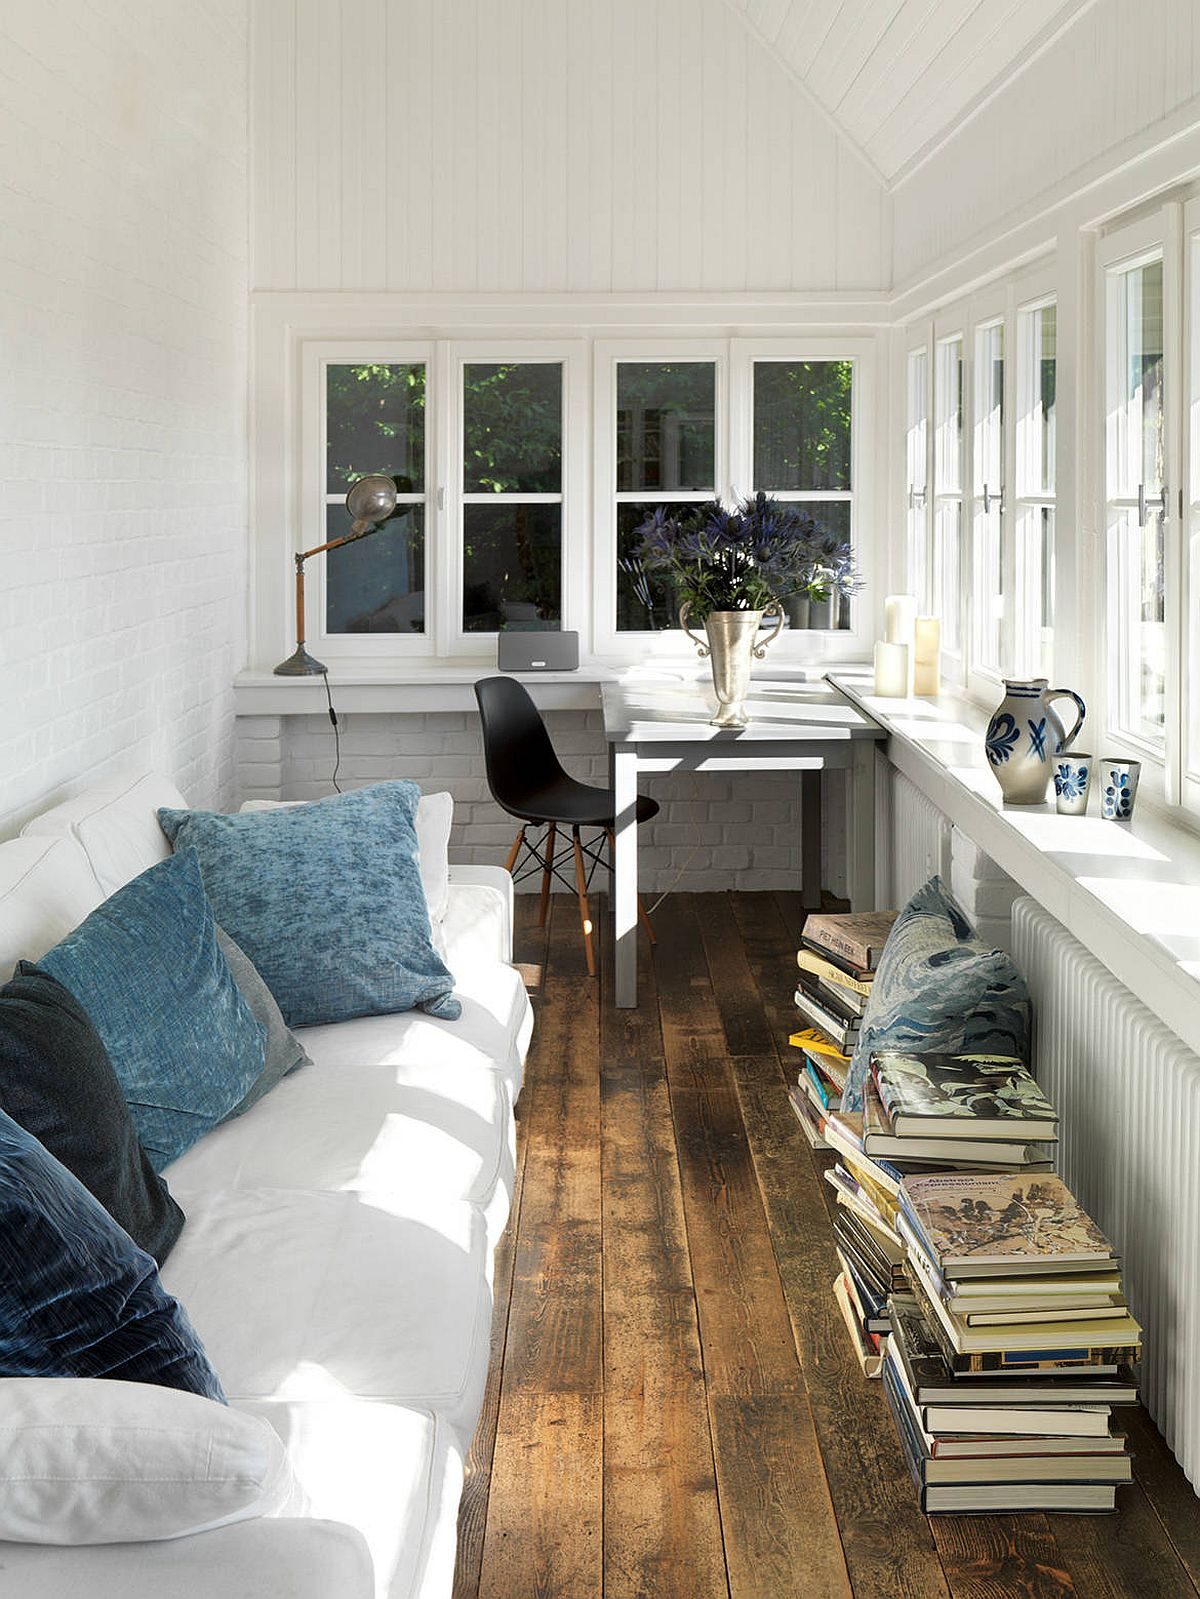 Turn the lovely modern farmhouse style sunroom into a place to work and relax